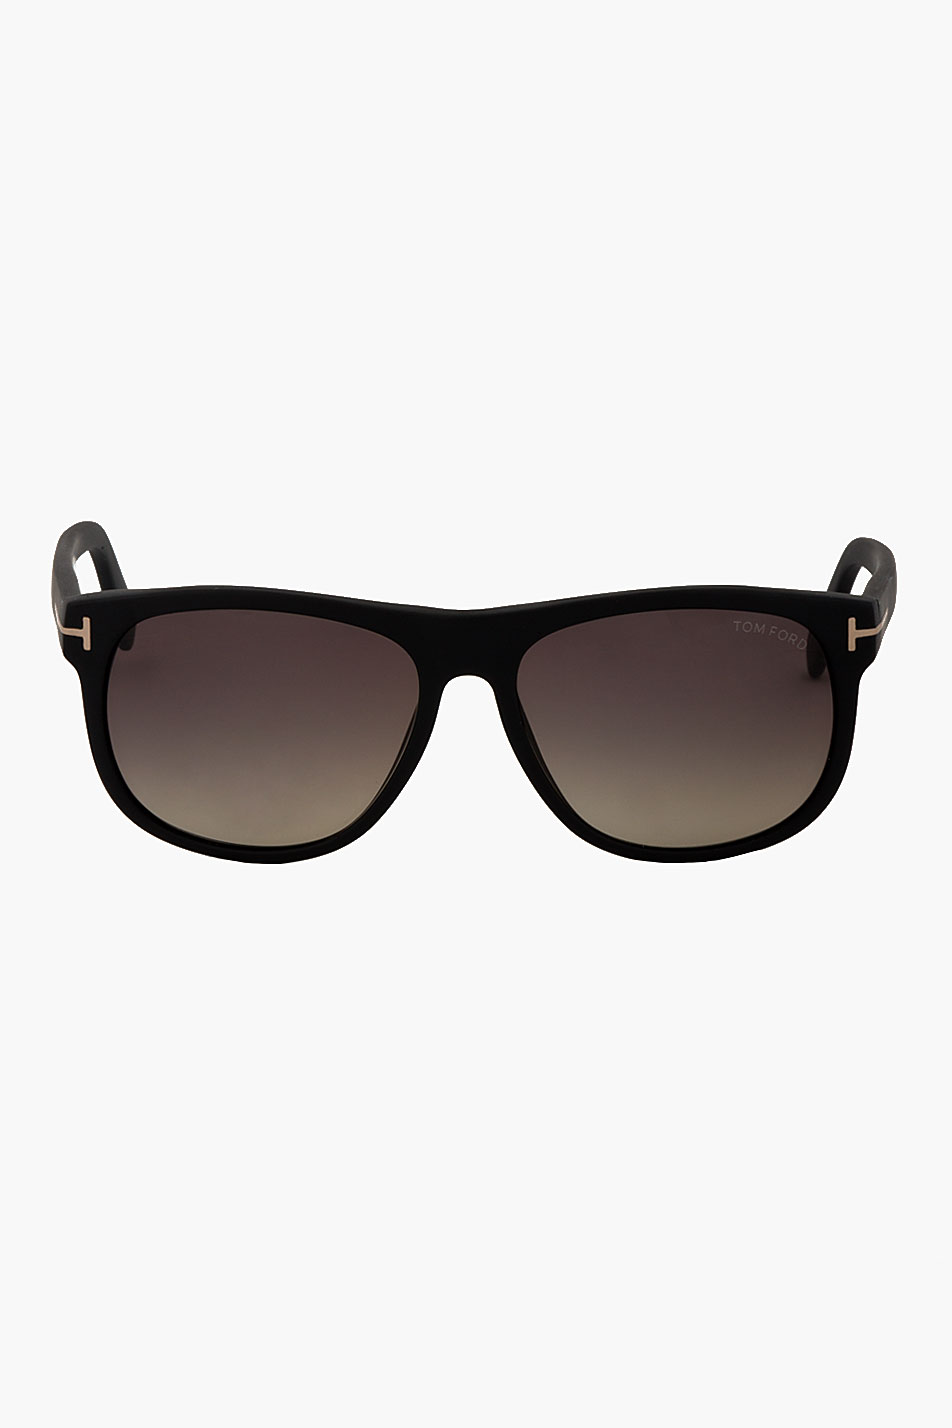 tom ford matte black olivier sunglasses in black for men. Black Bedroom Furniture Sets. Home Design Ideas